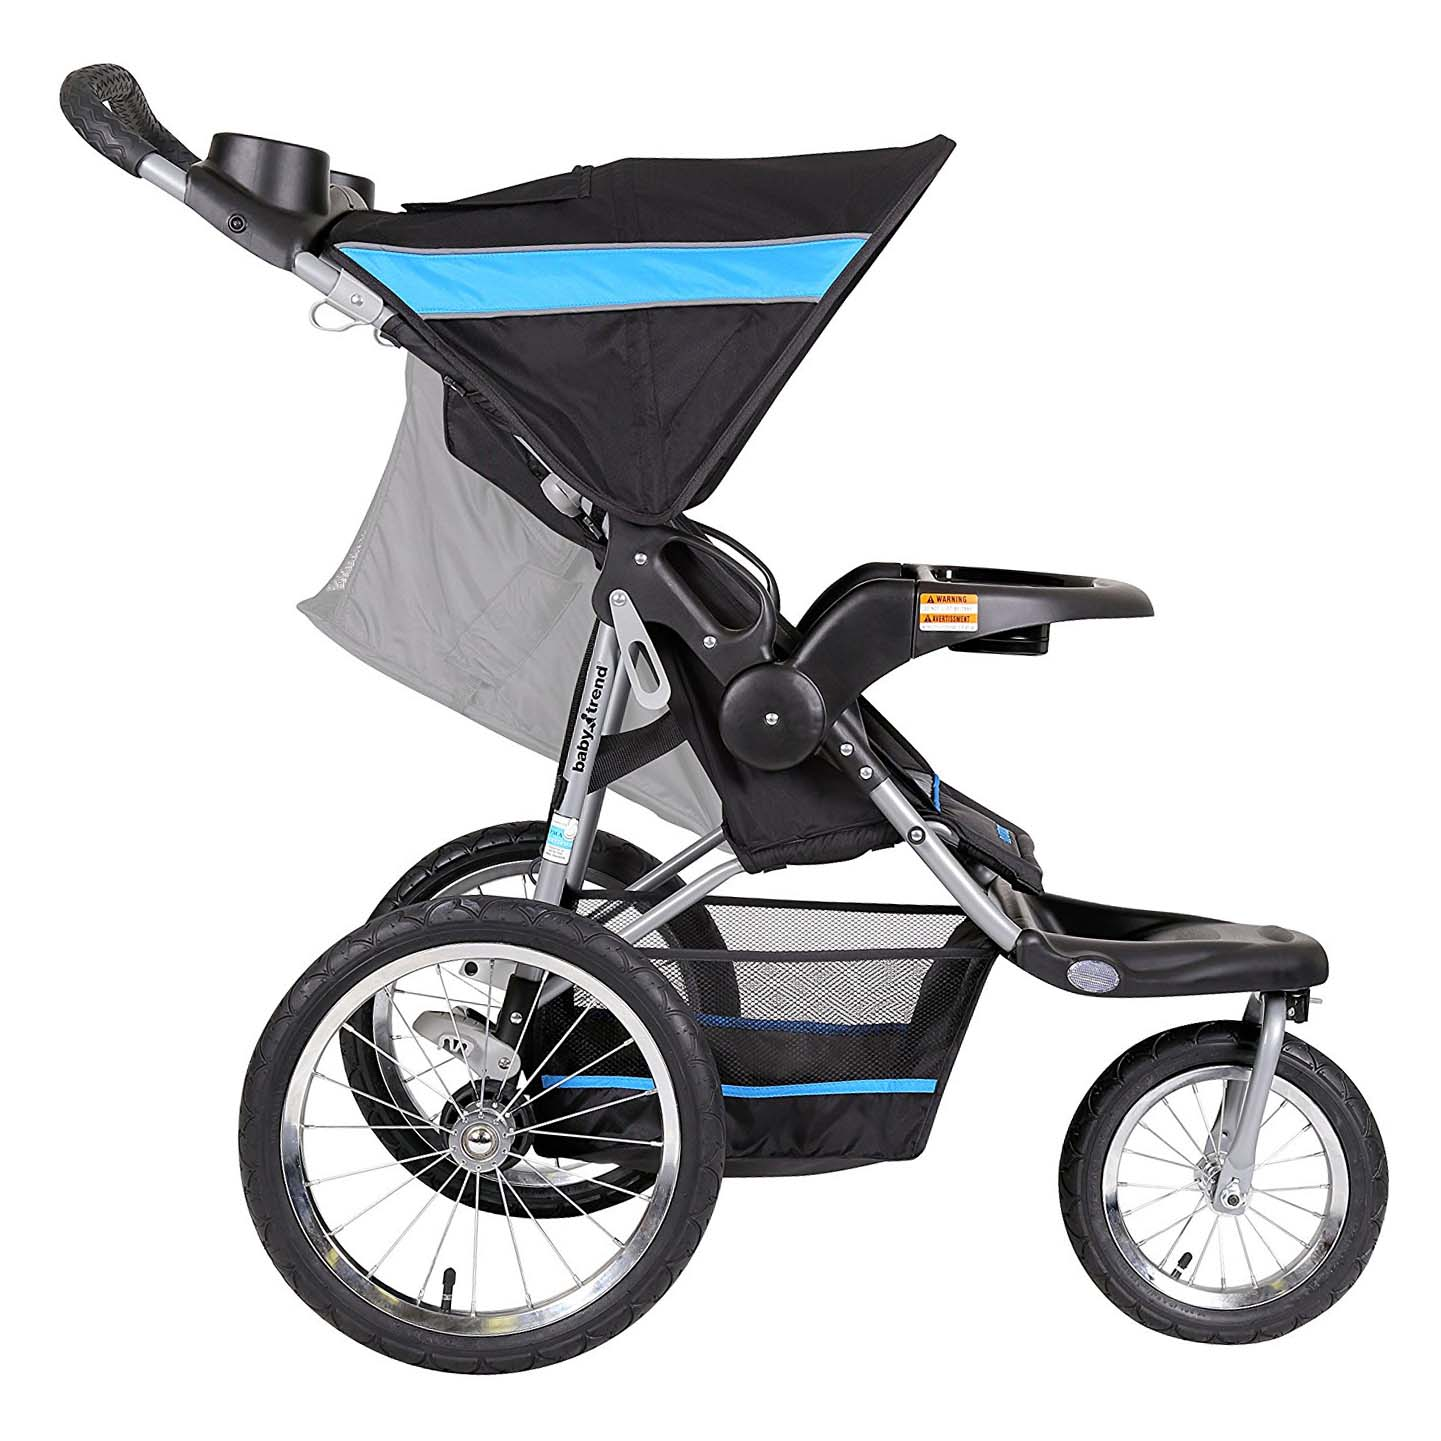 671d594627822 Baby Trend Expedition Jogger Travel System - Walmart.com